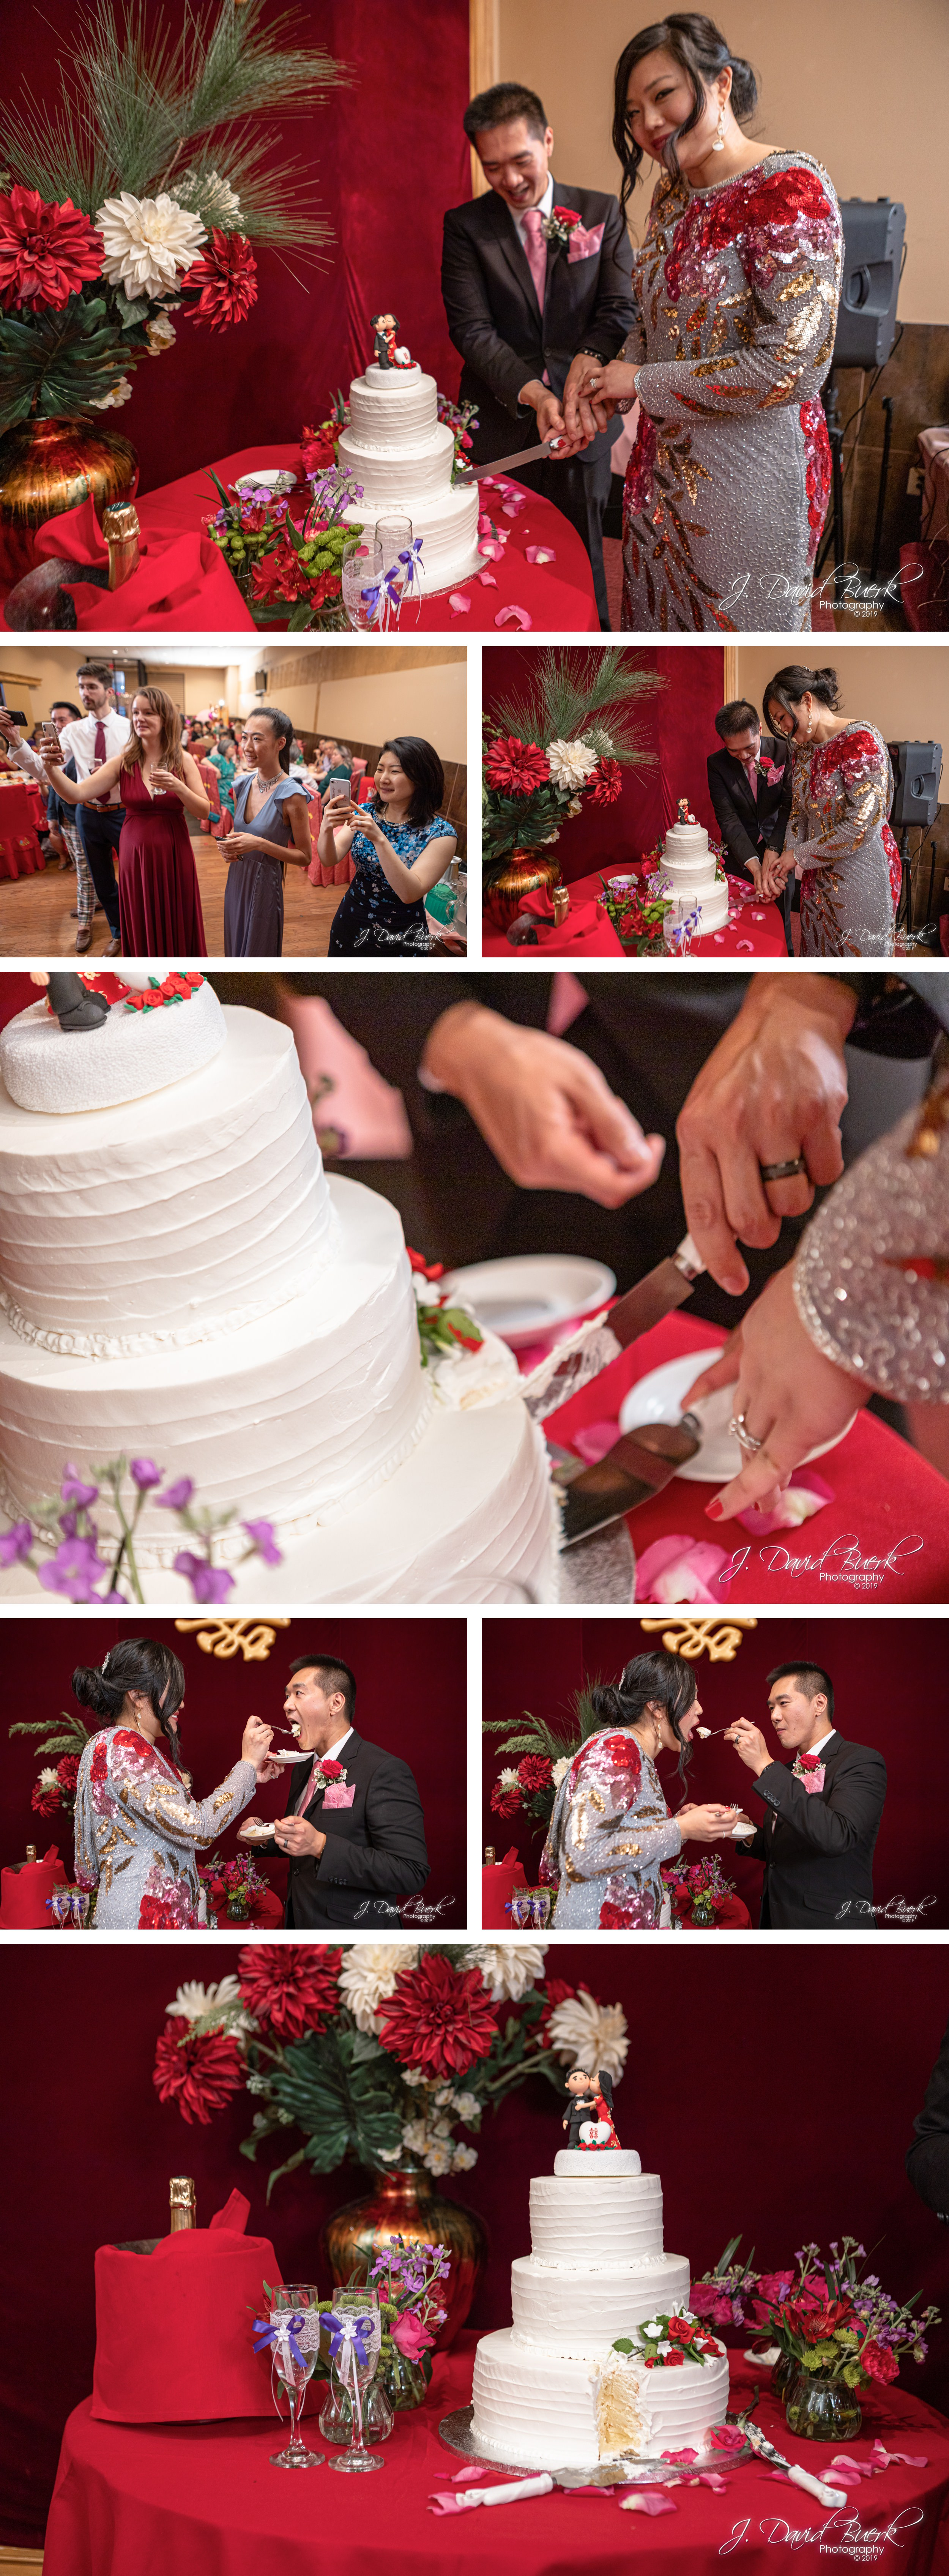 20190706 - David and Tiffany - Married 17.jpg